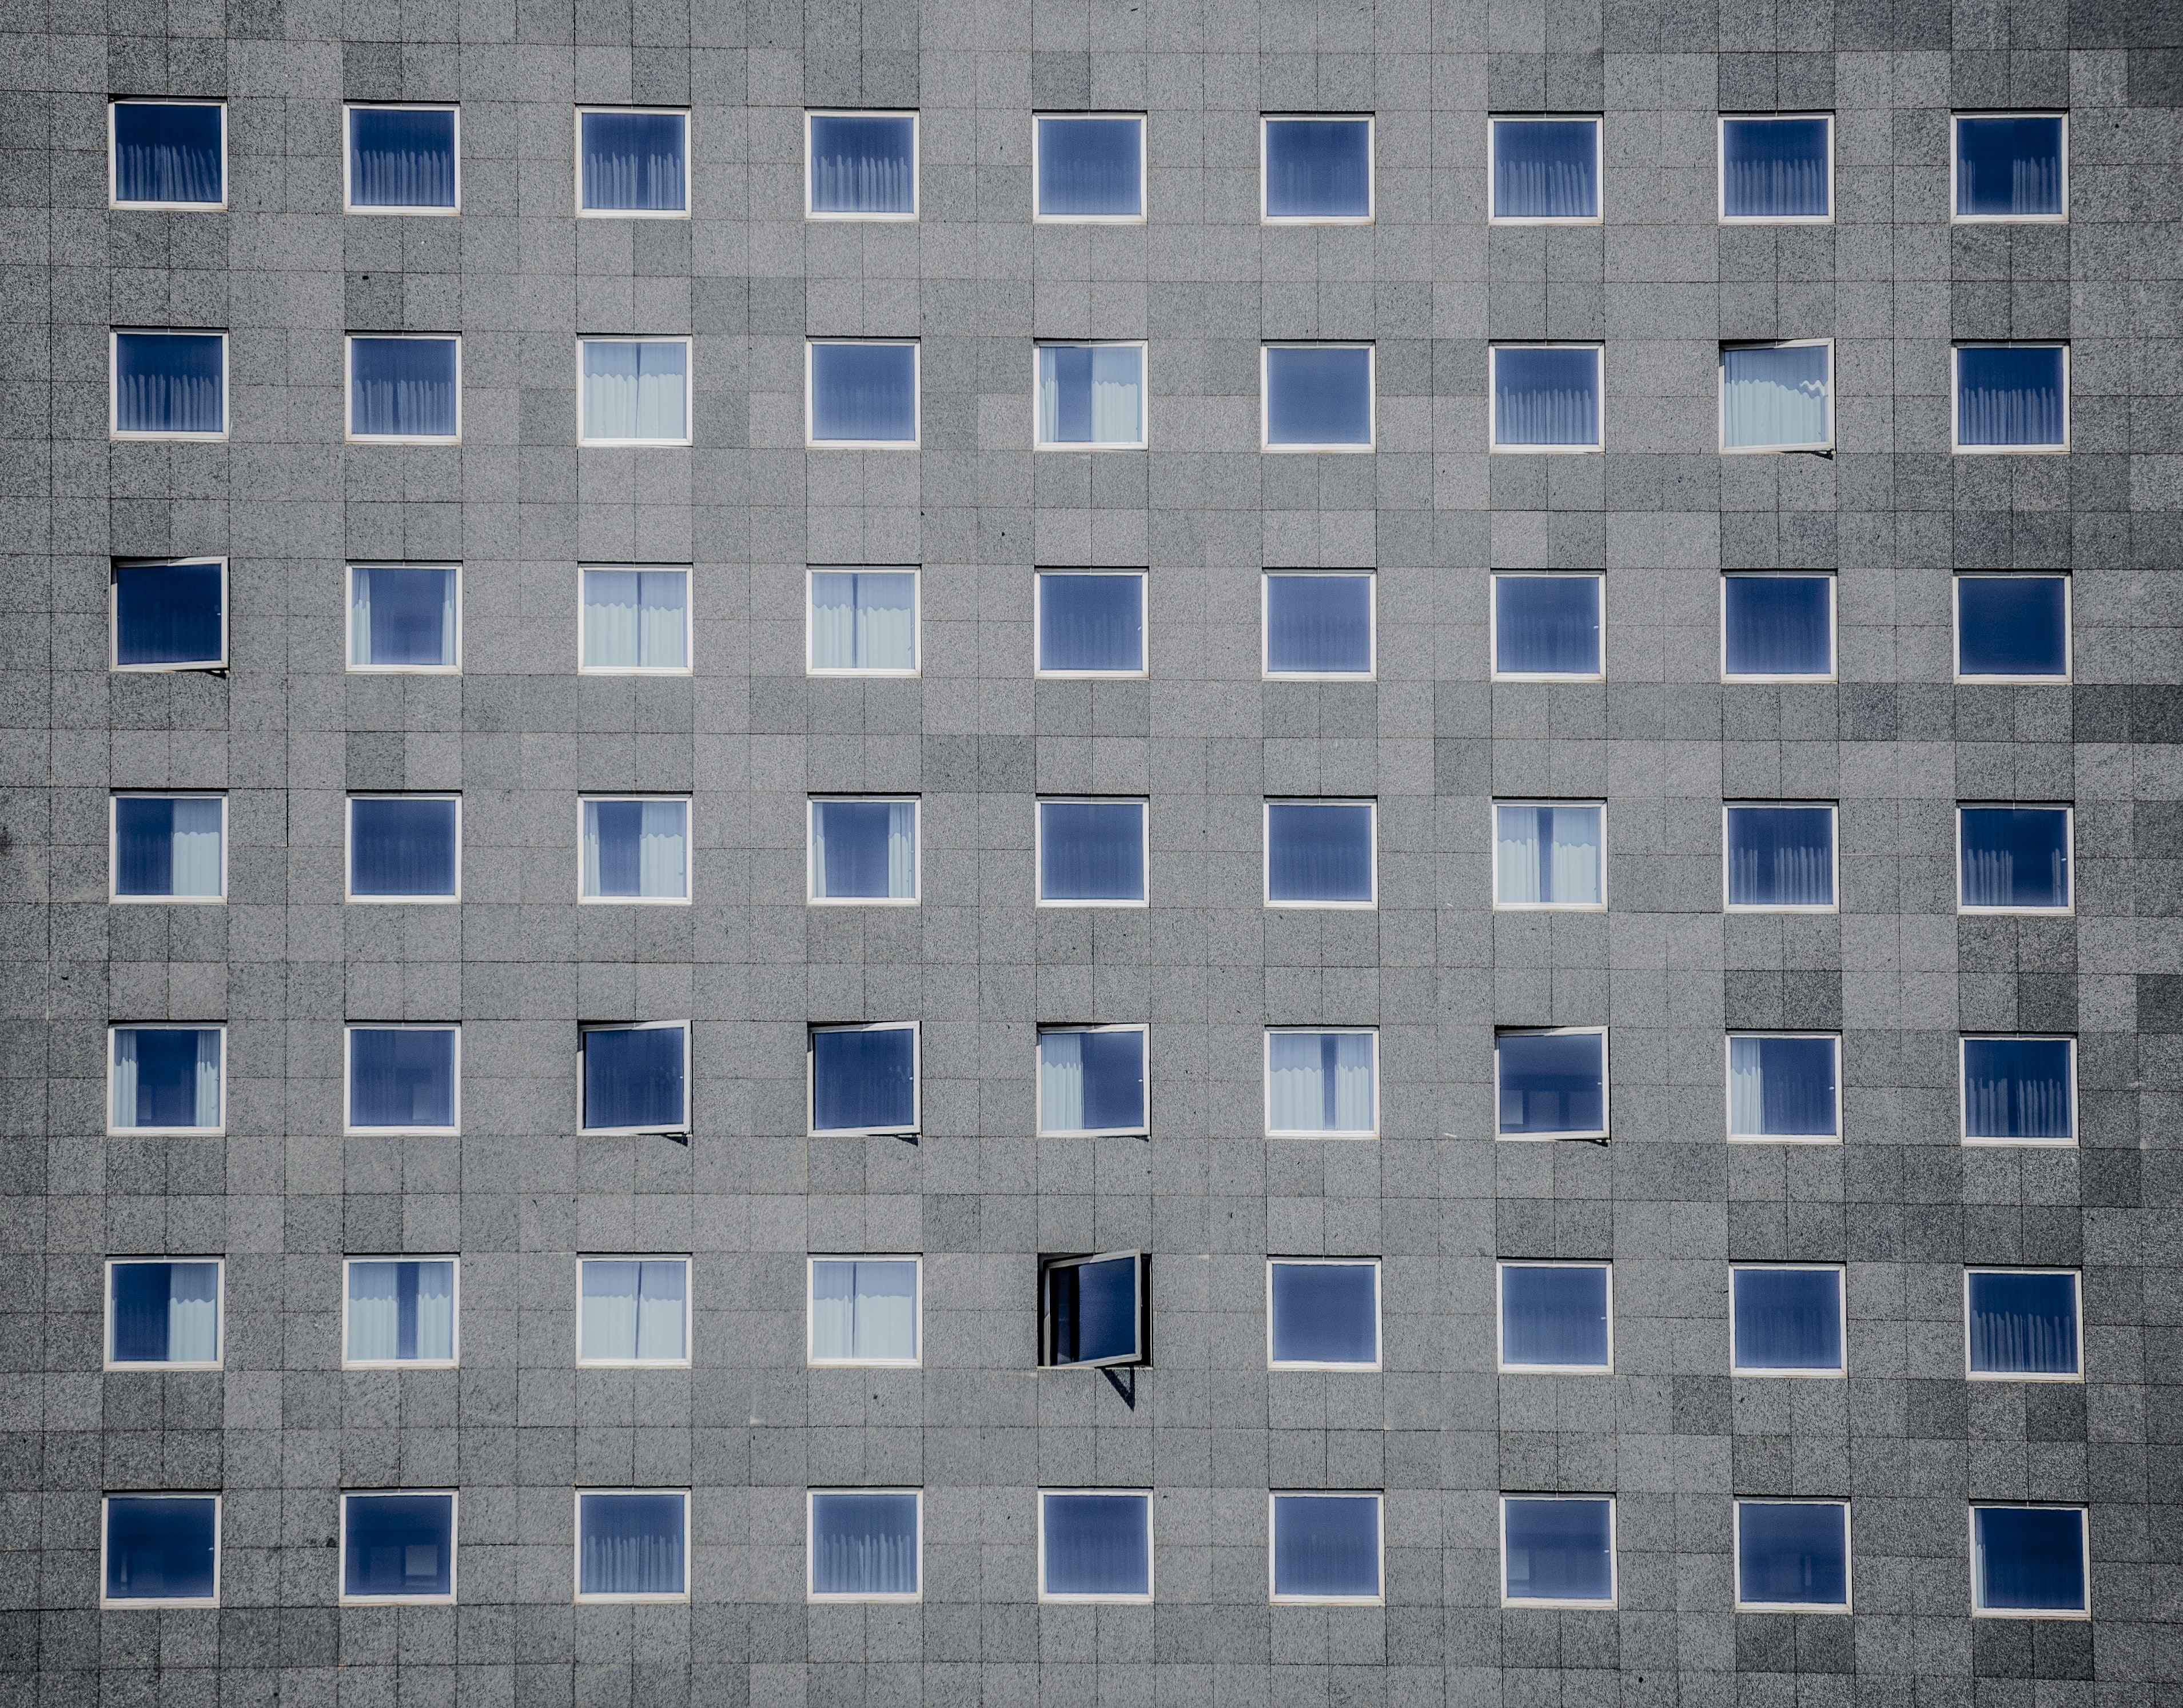 A regular arrangement of square windows in a gray tiled facade